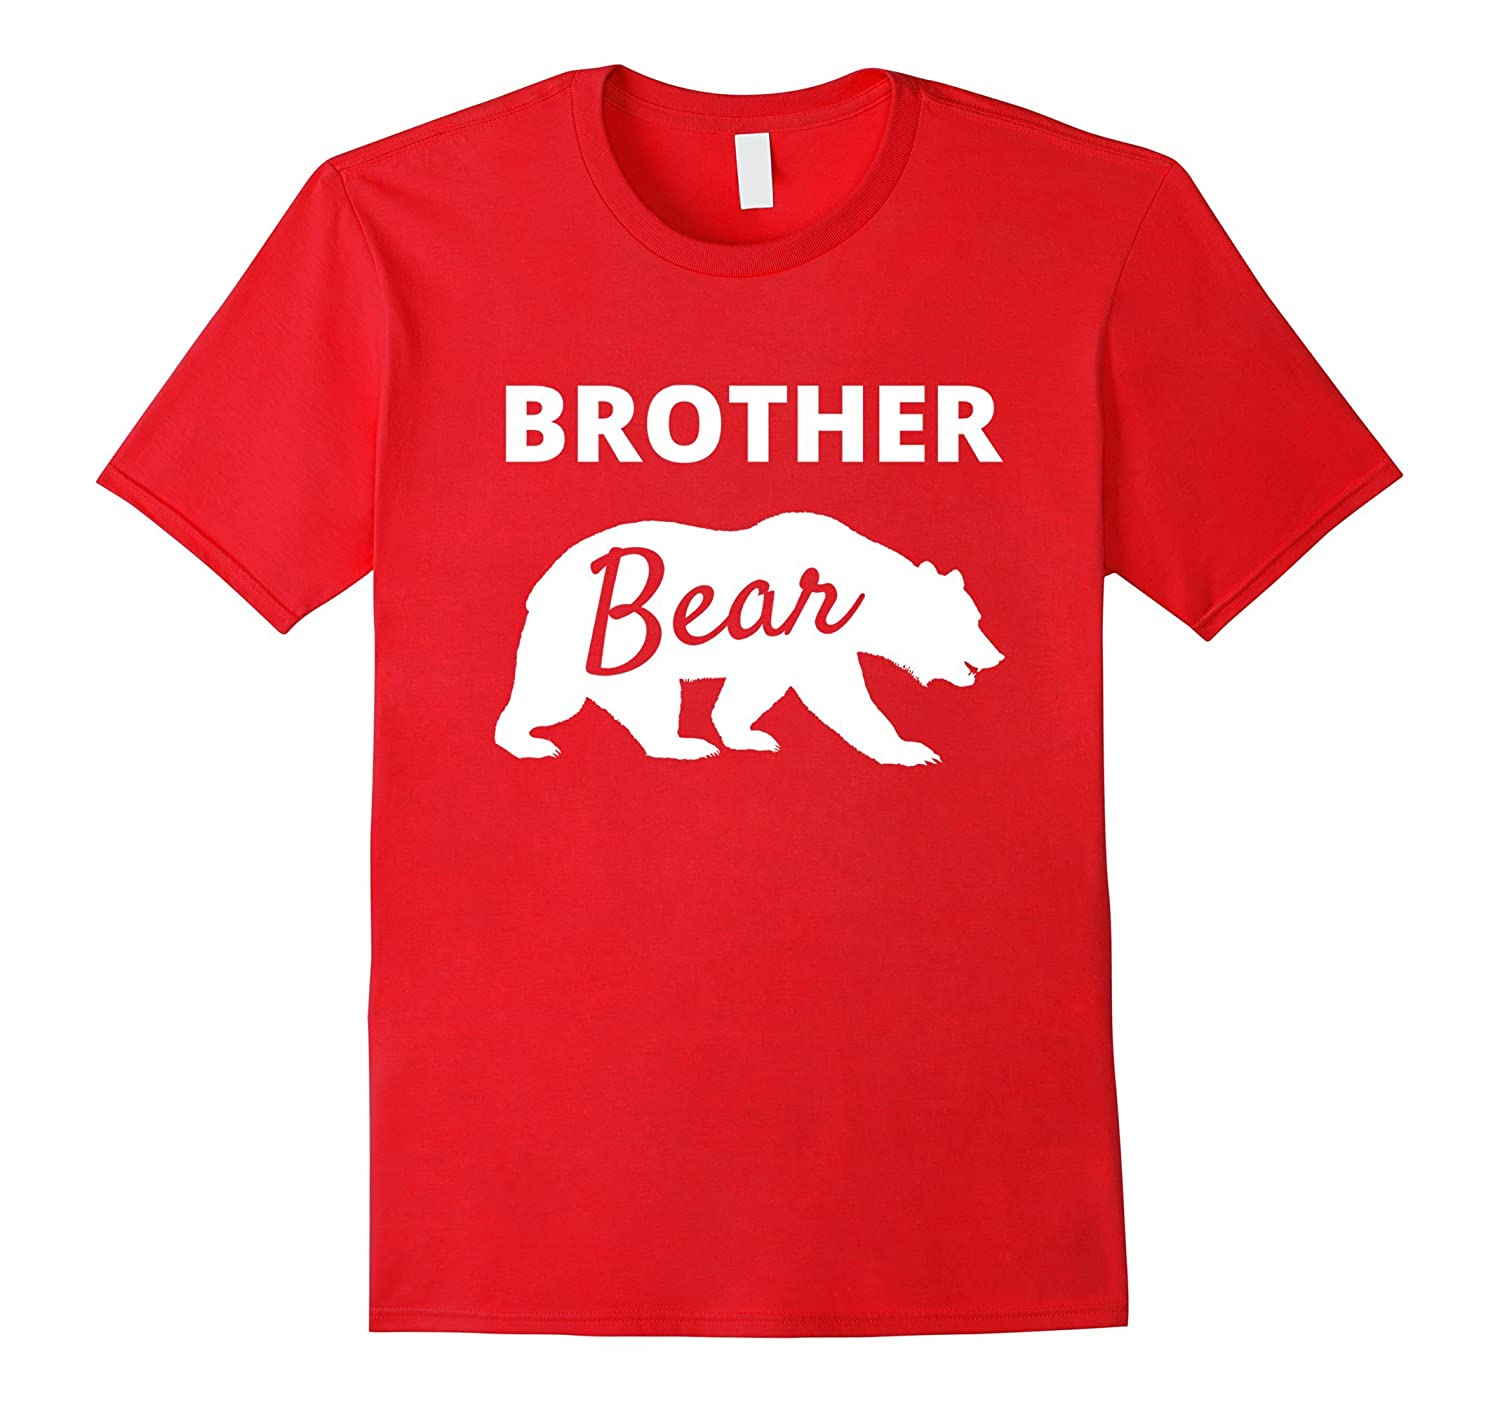 Brother Bear Camping Shirt Family Camping Gift for Men Boys-T-Shirt